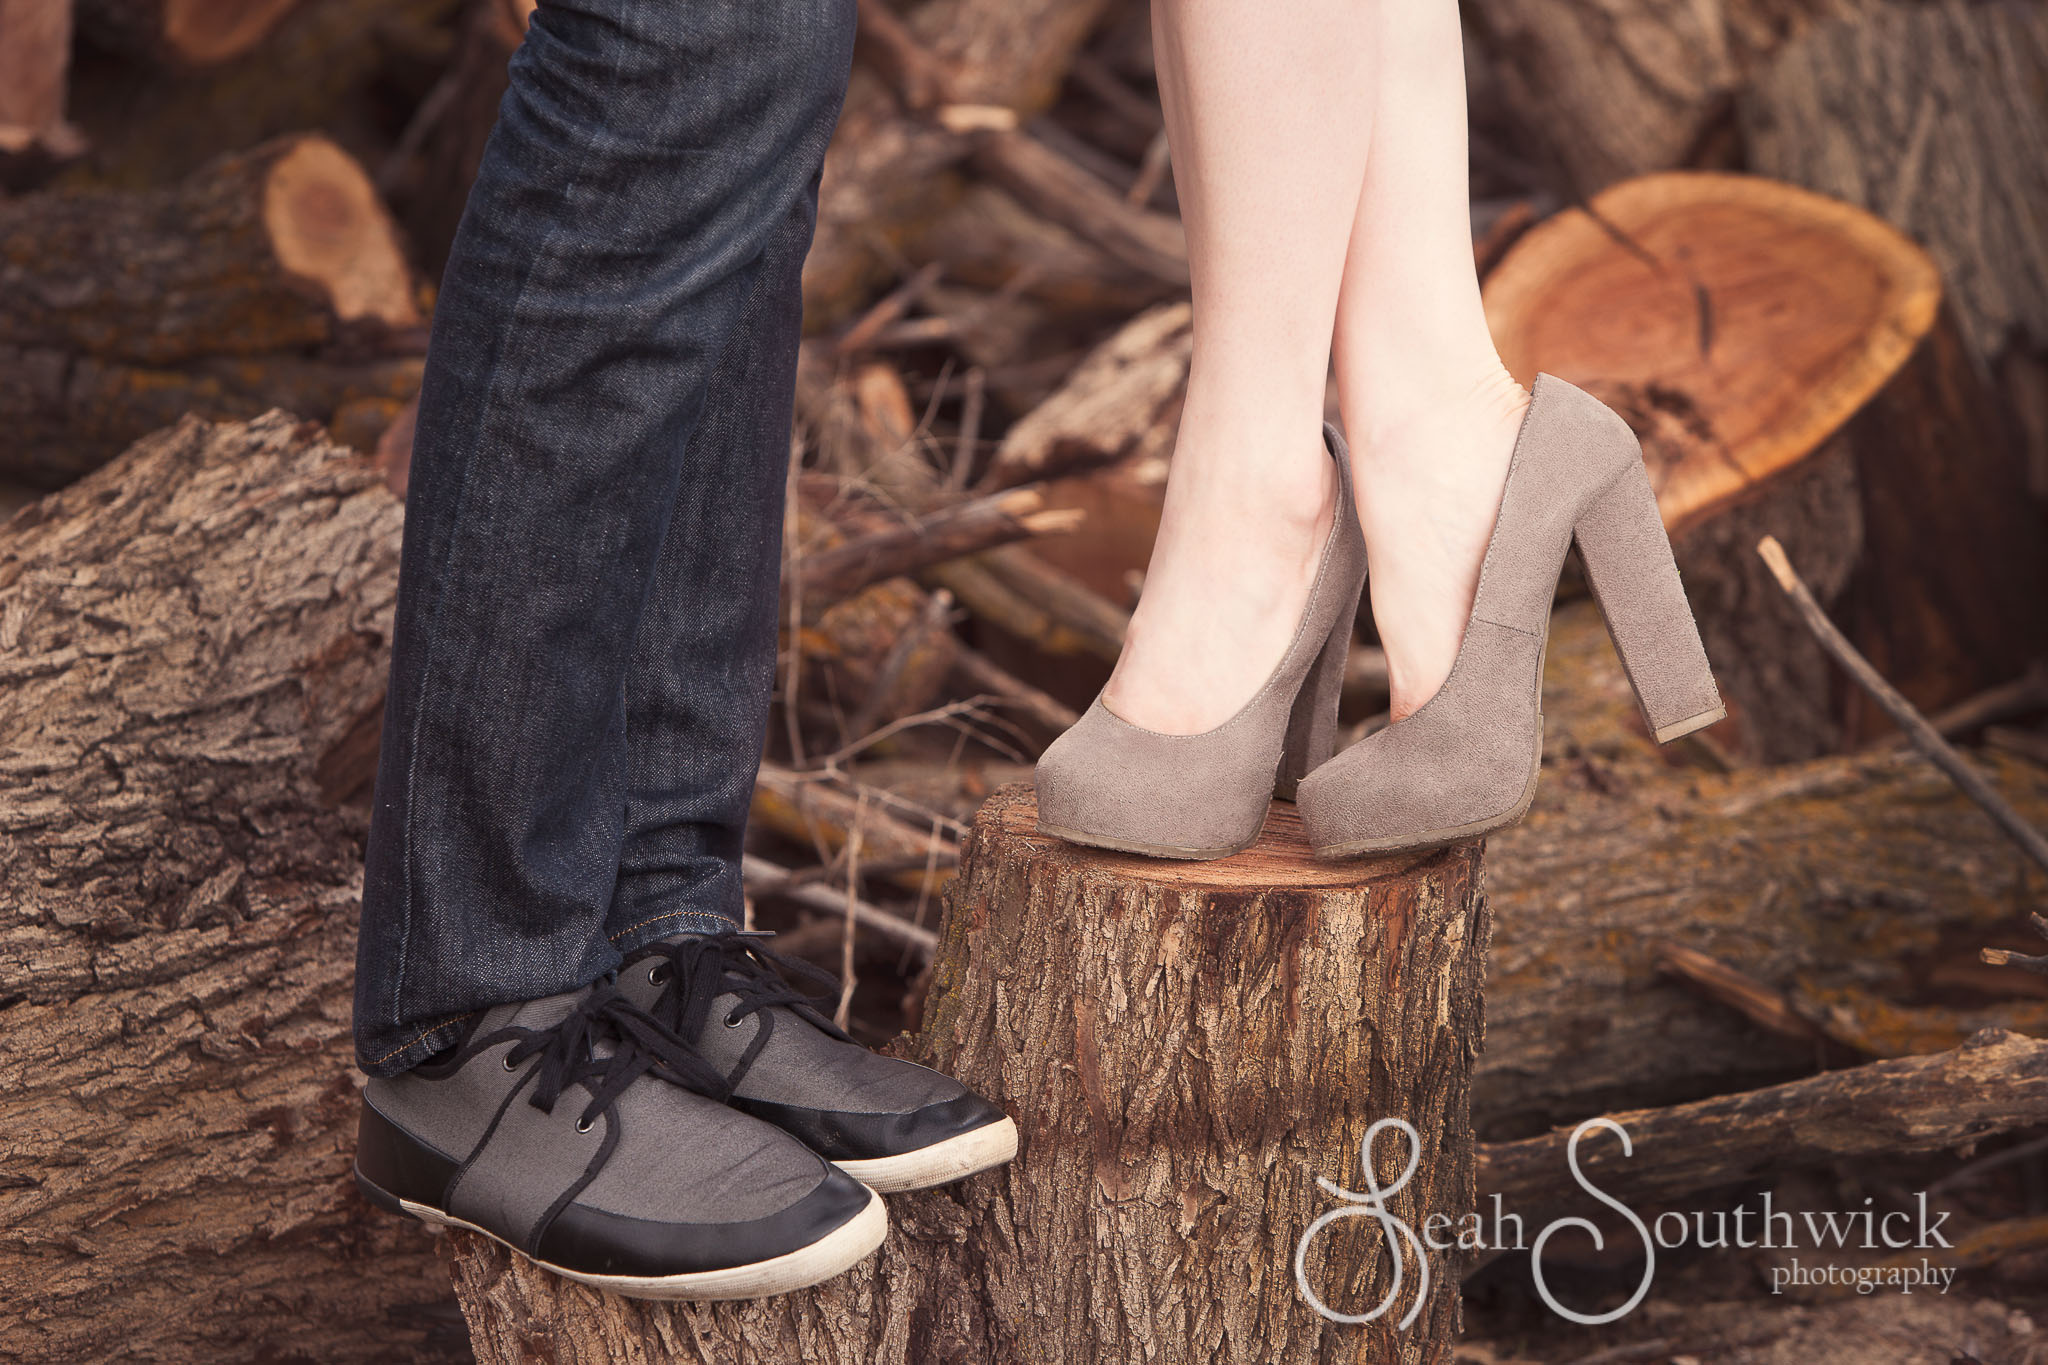 Engagement Photography Leah Southwick Photography-1.jpg